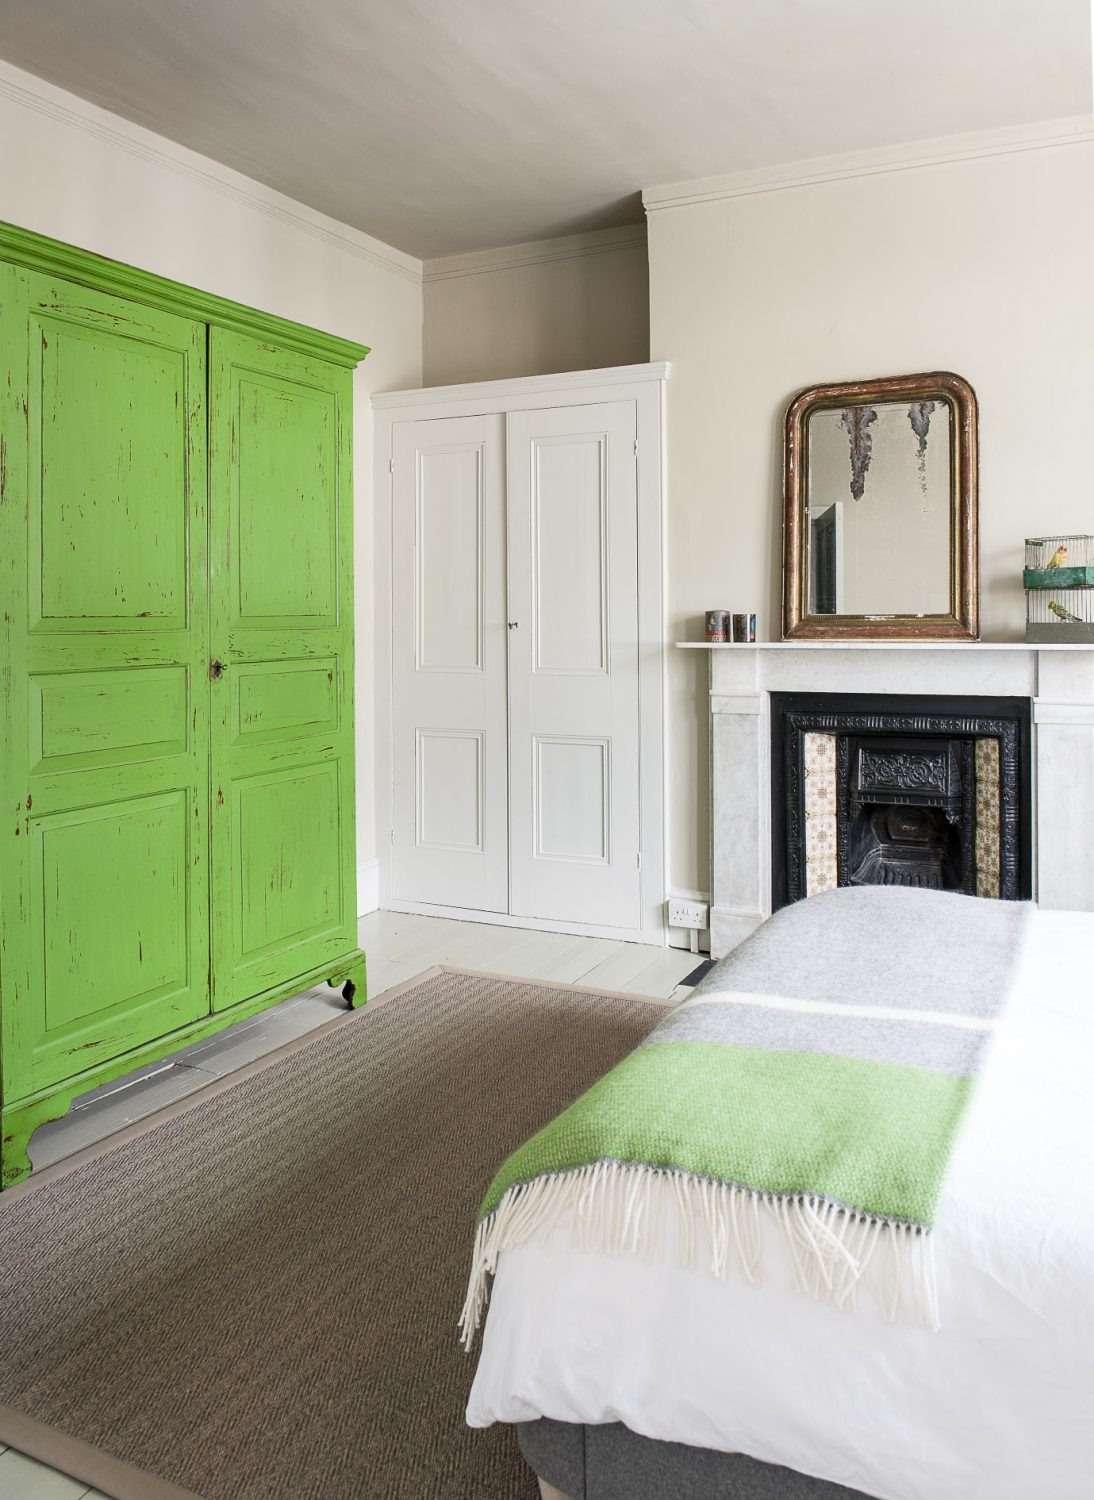 "The scheme in this room is dominated by a large wardrobe – a cloak cupboard from the House of Lords that was given to Annette by an aunt. Annette has painted it bright green. ""I was going to paint the whole room that colour but I chickened out and just kept it to the cupboard."""